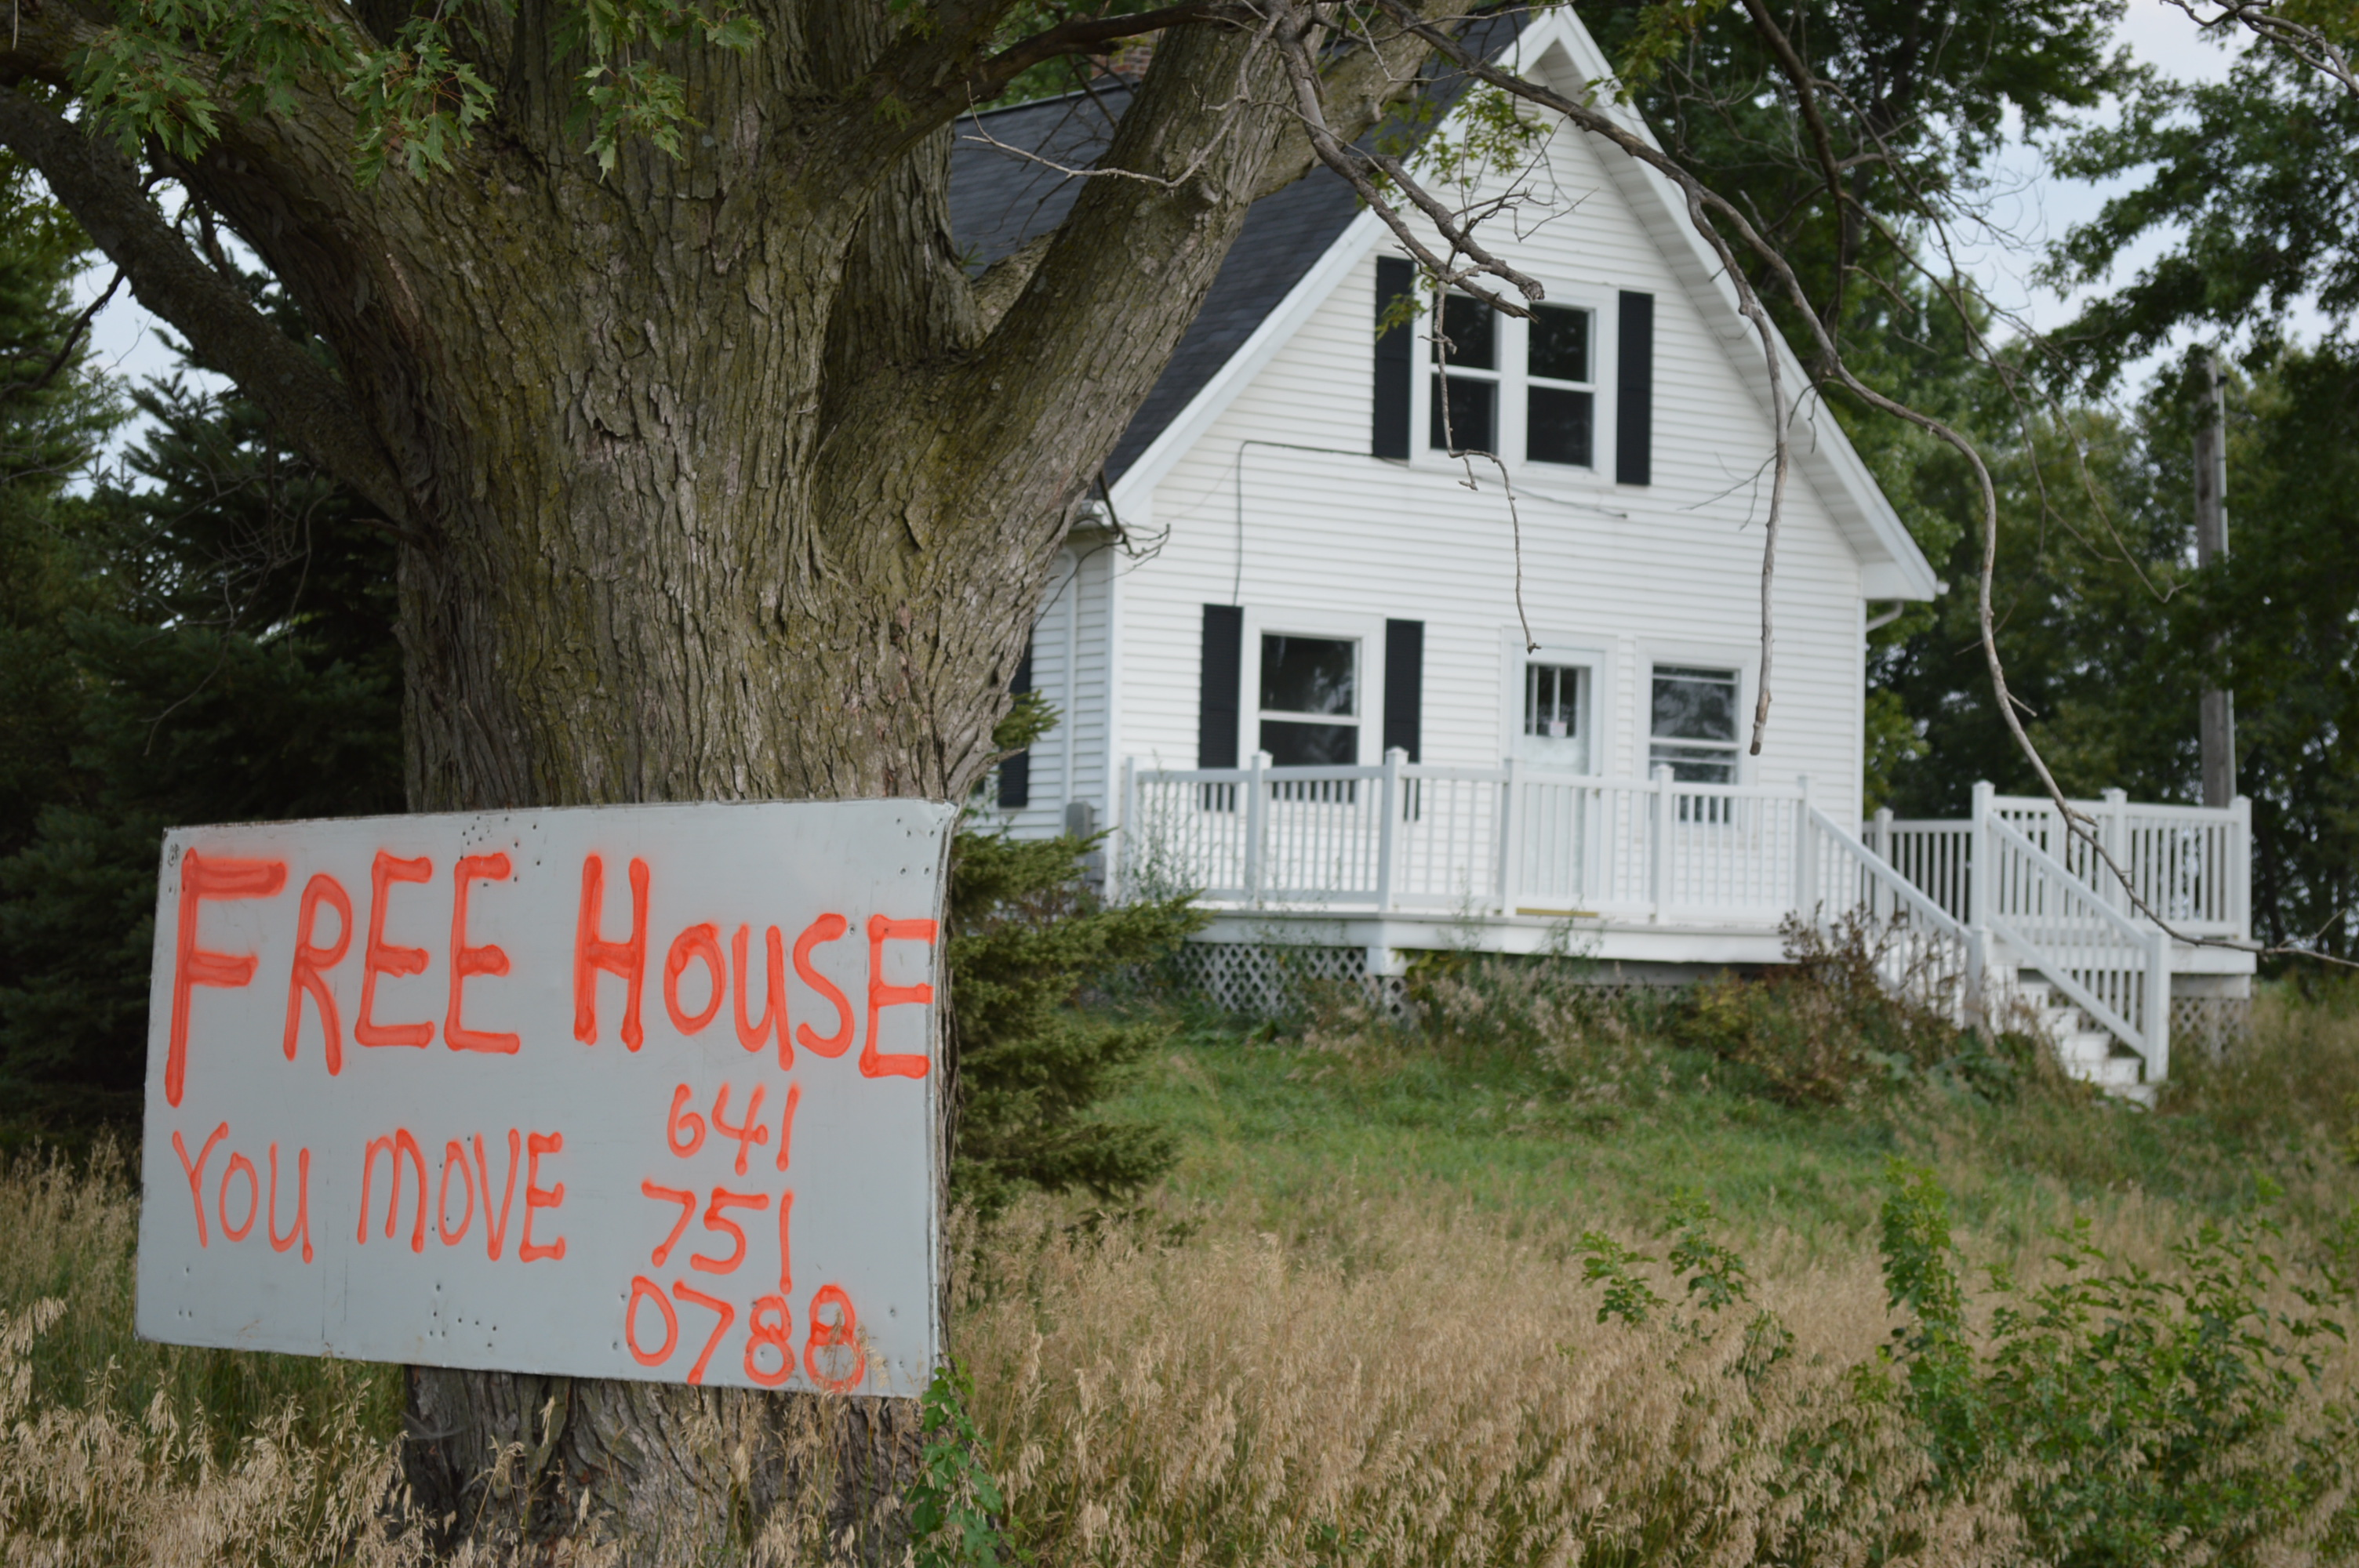 Free house sign attracts attention near blairstown home will be given away to move for Hause on line